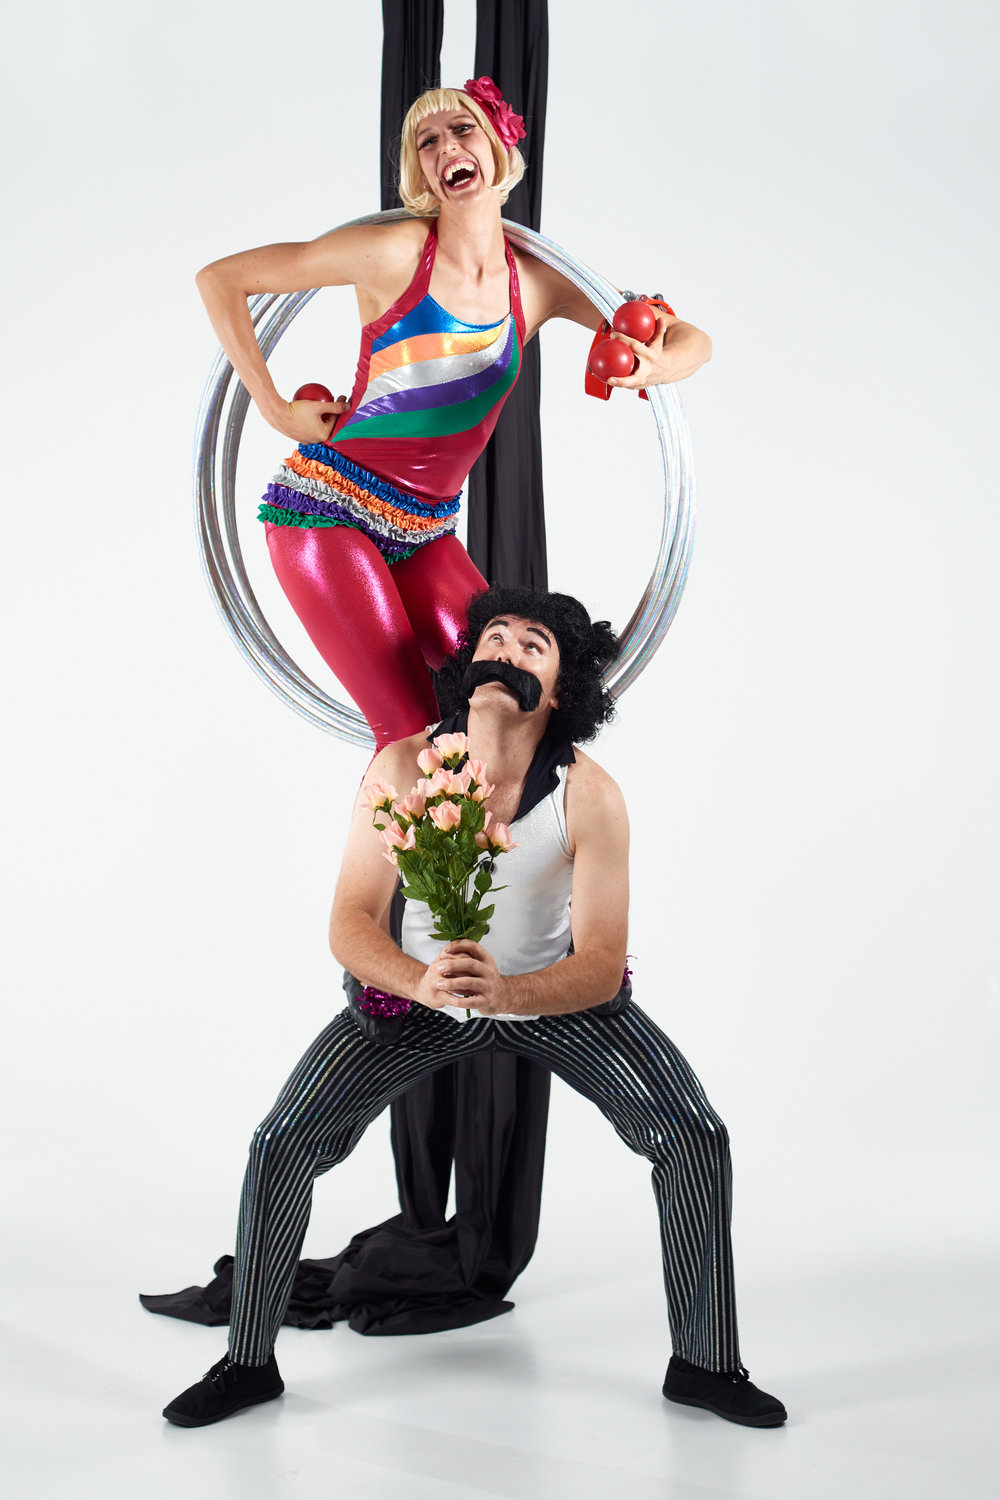 The acrobatic duo Scrambled Legs, Claire Ogden and Shane Smith